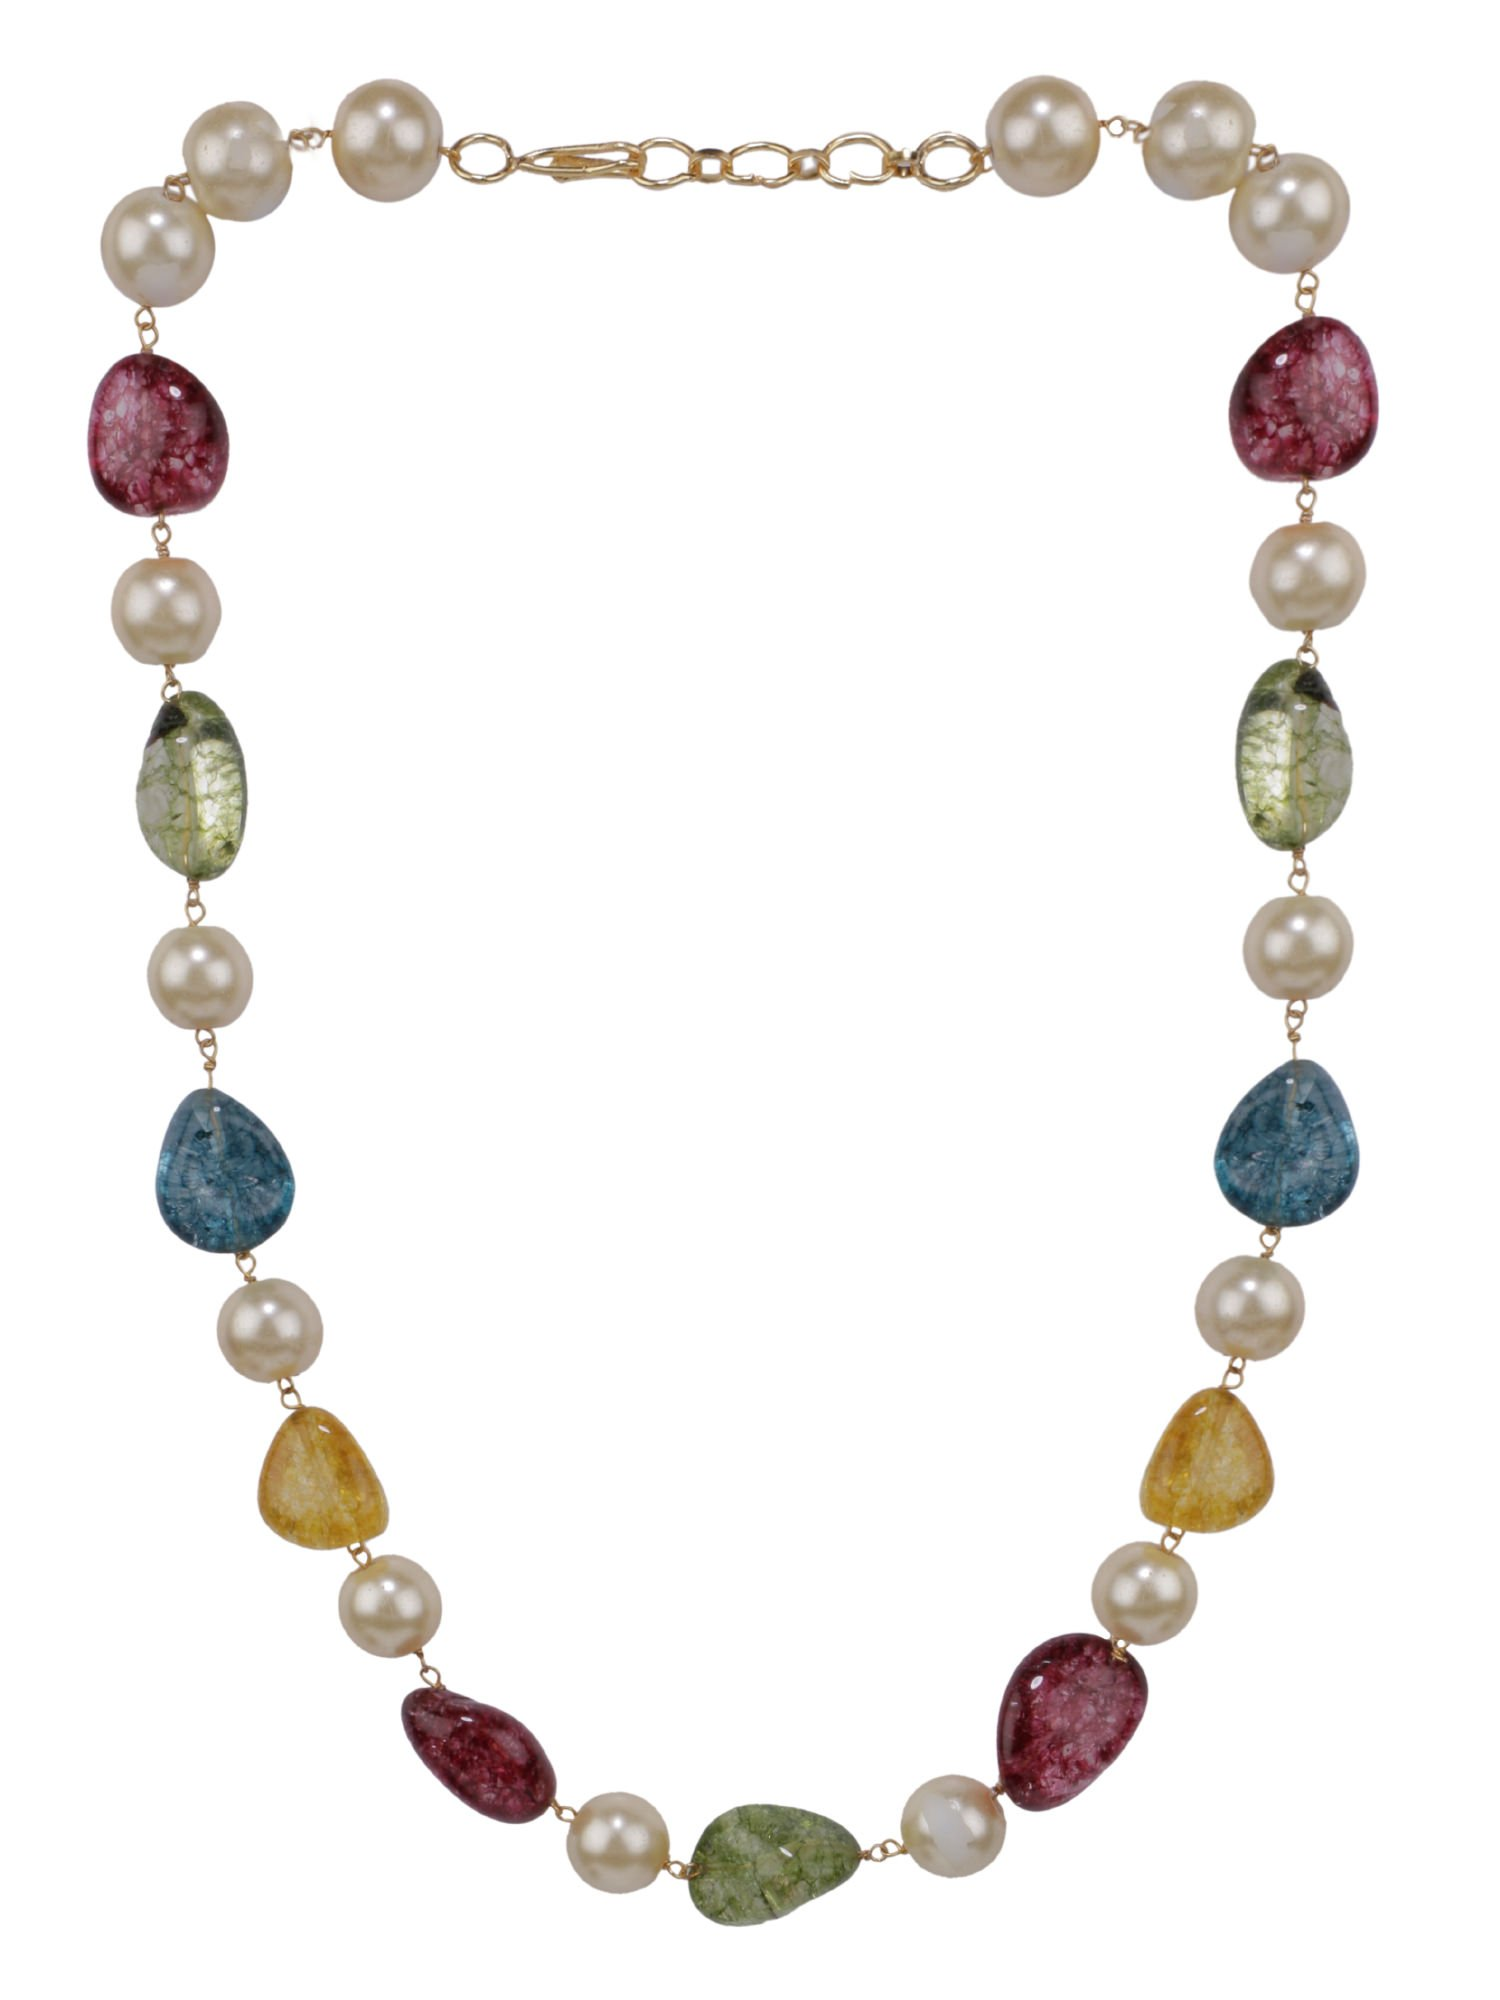 Efulgenz Indian Bollywood Tourmaline Pearl Beaded Strand Bridal Necklace Wedding Jewelry Women